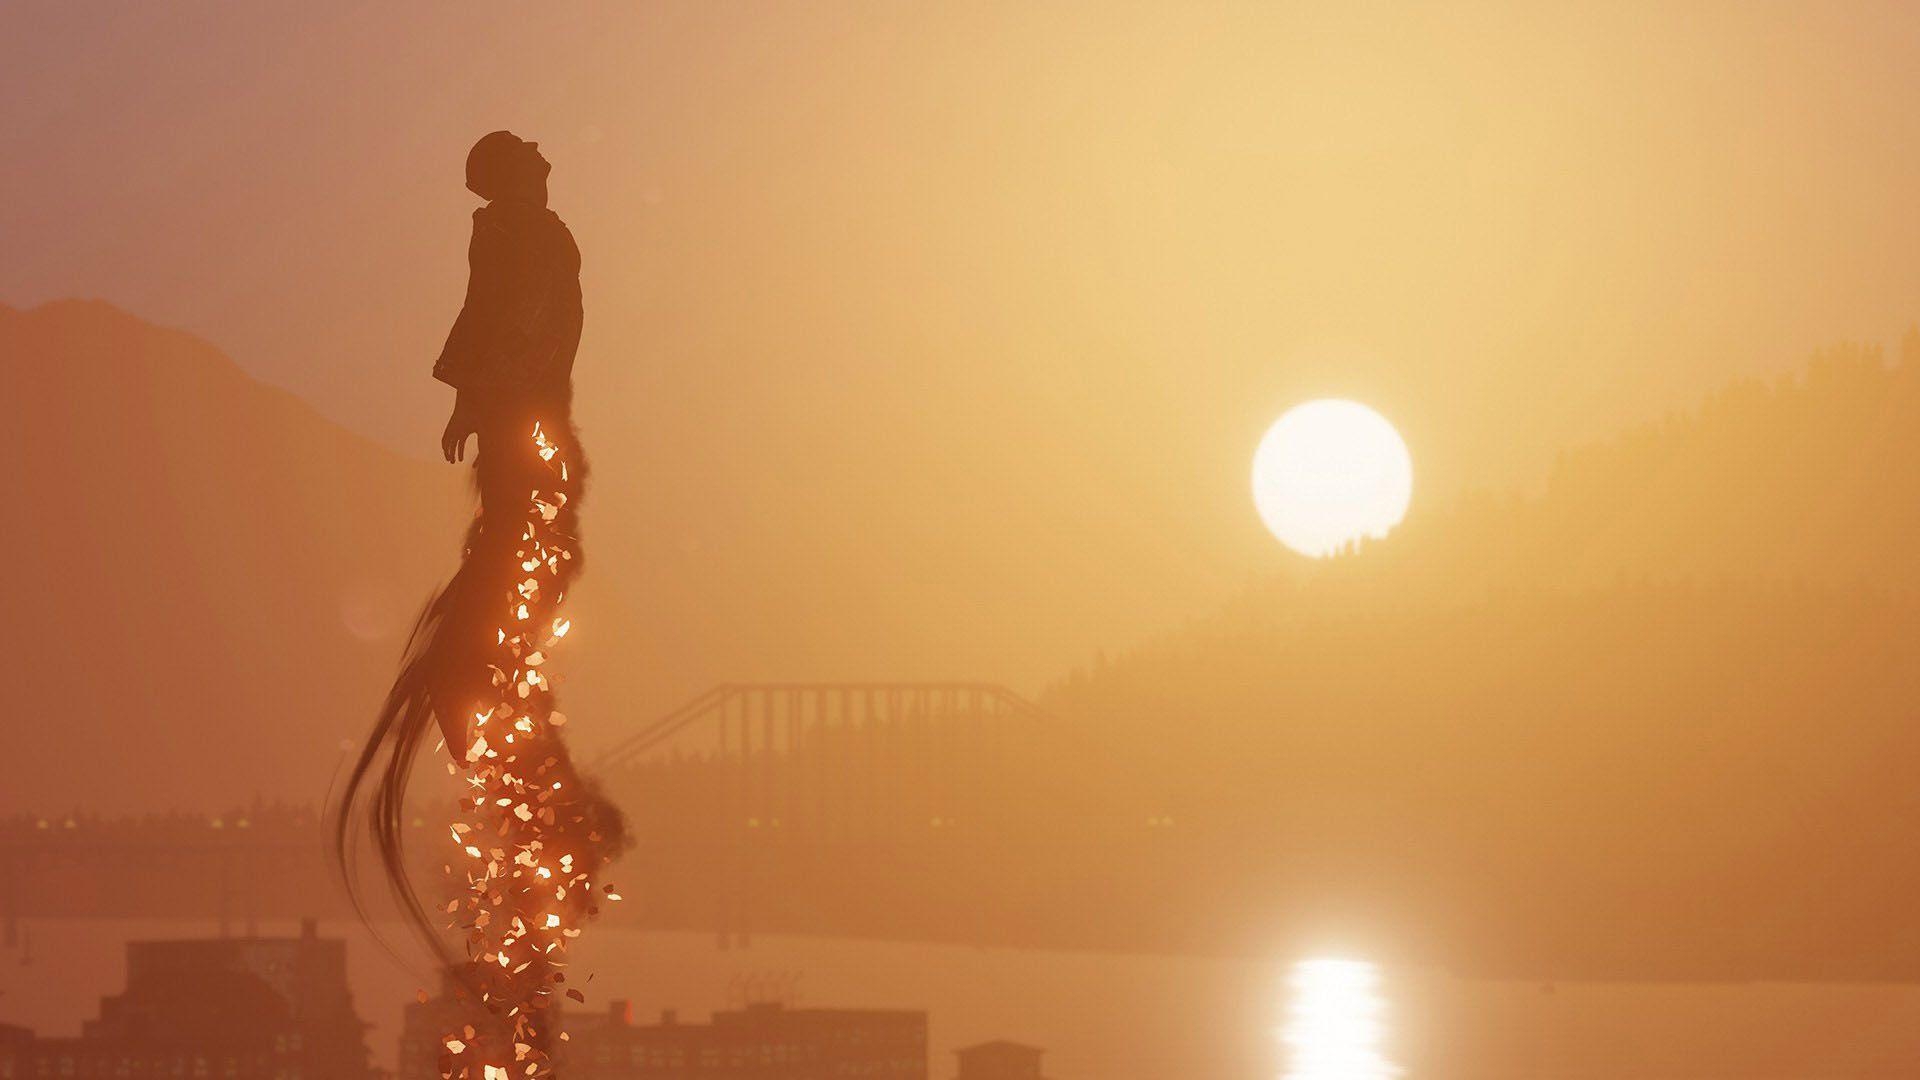 Delsin's superpower at Sunset, inFAMOUS Second Son - 1920x1080 ...